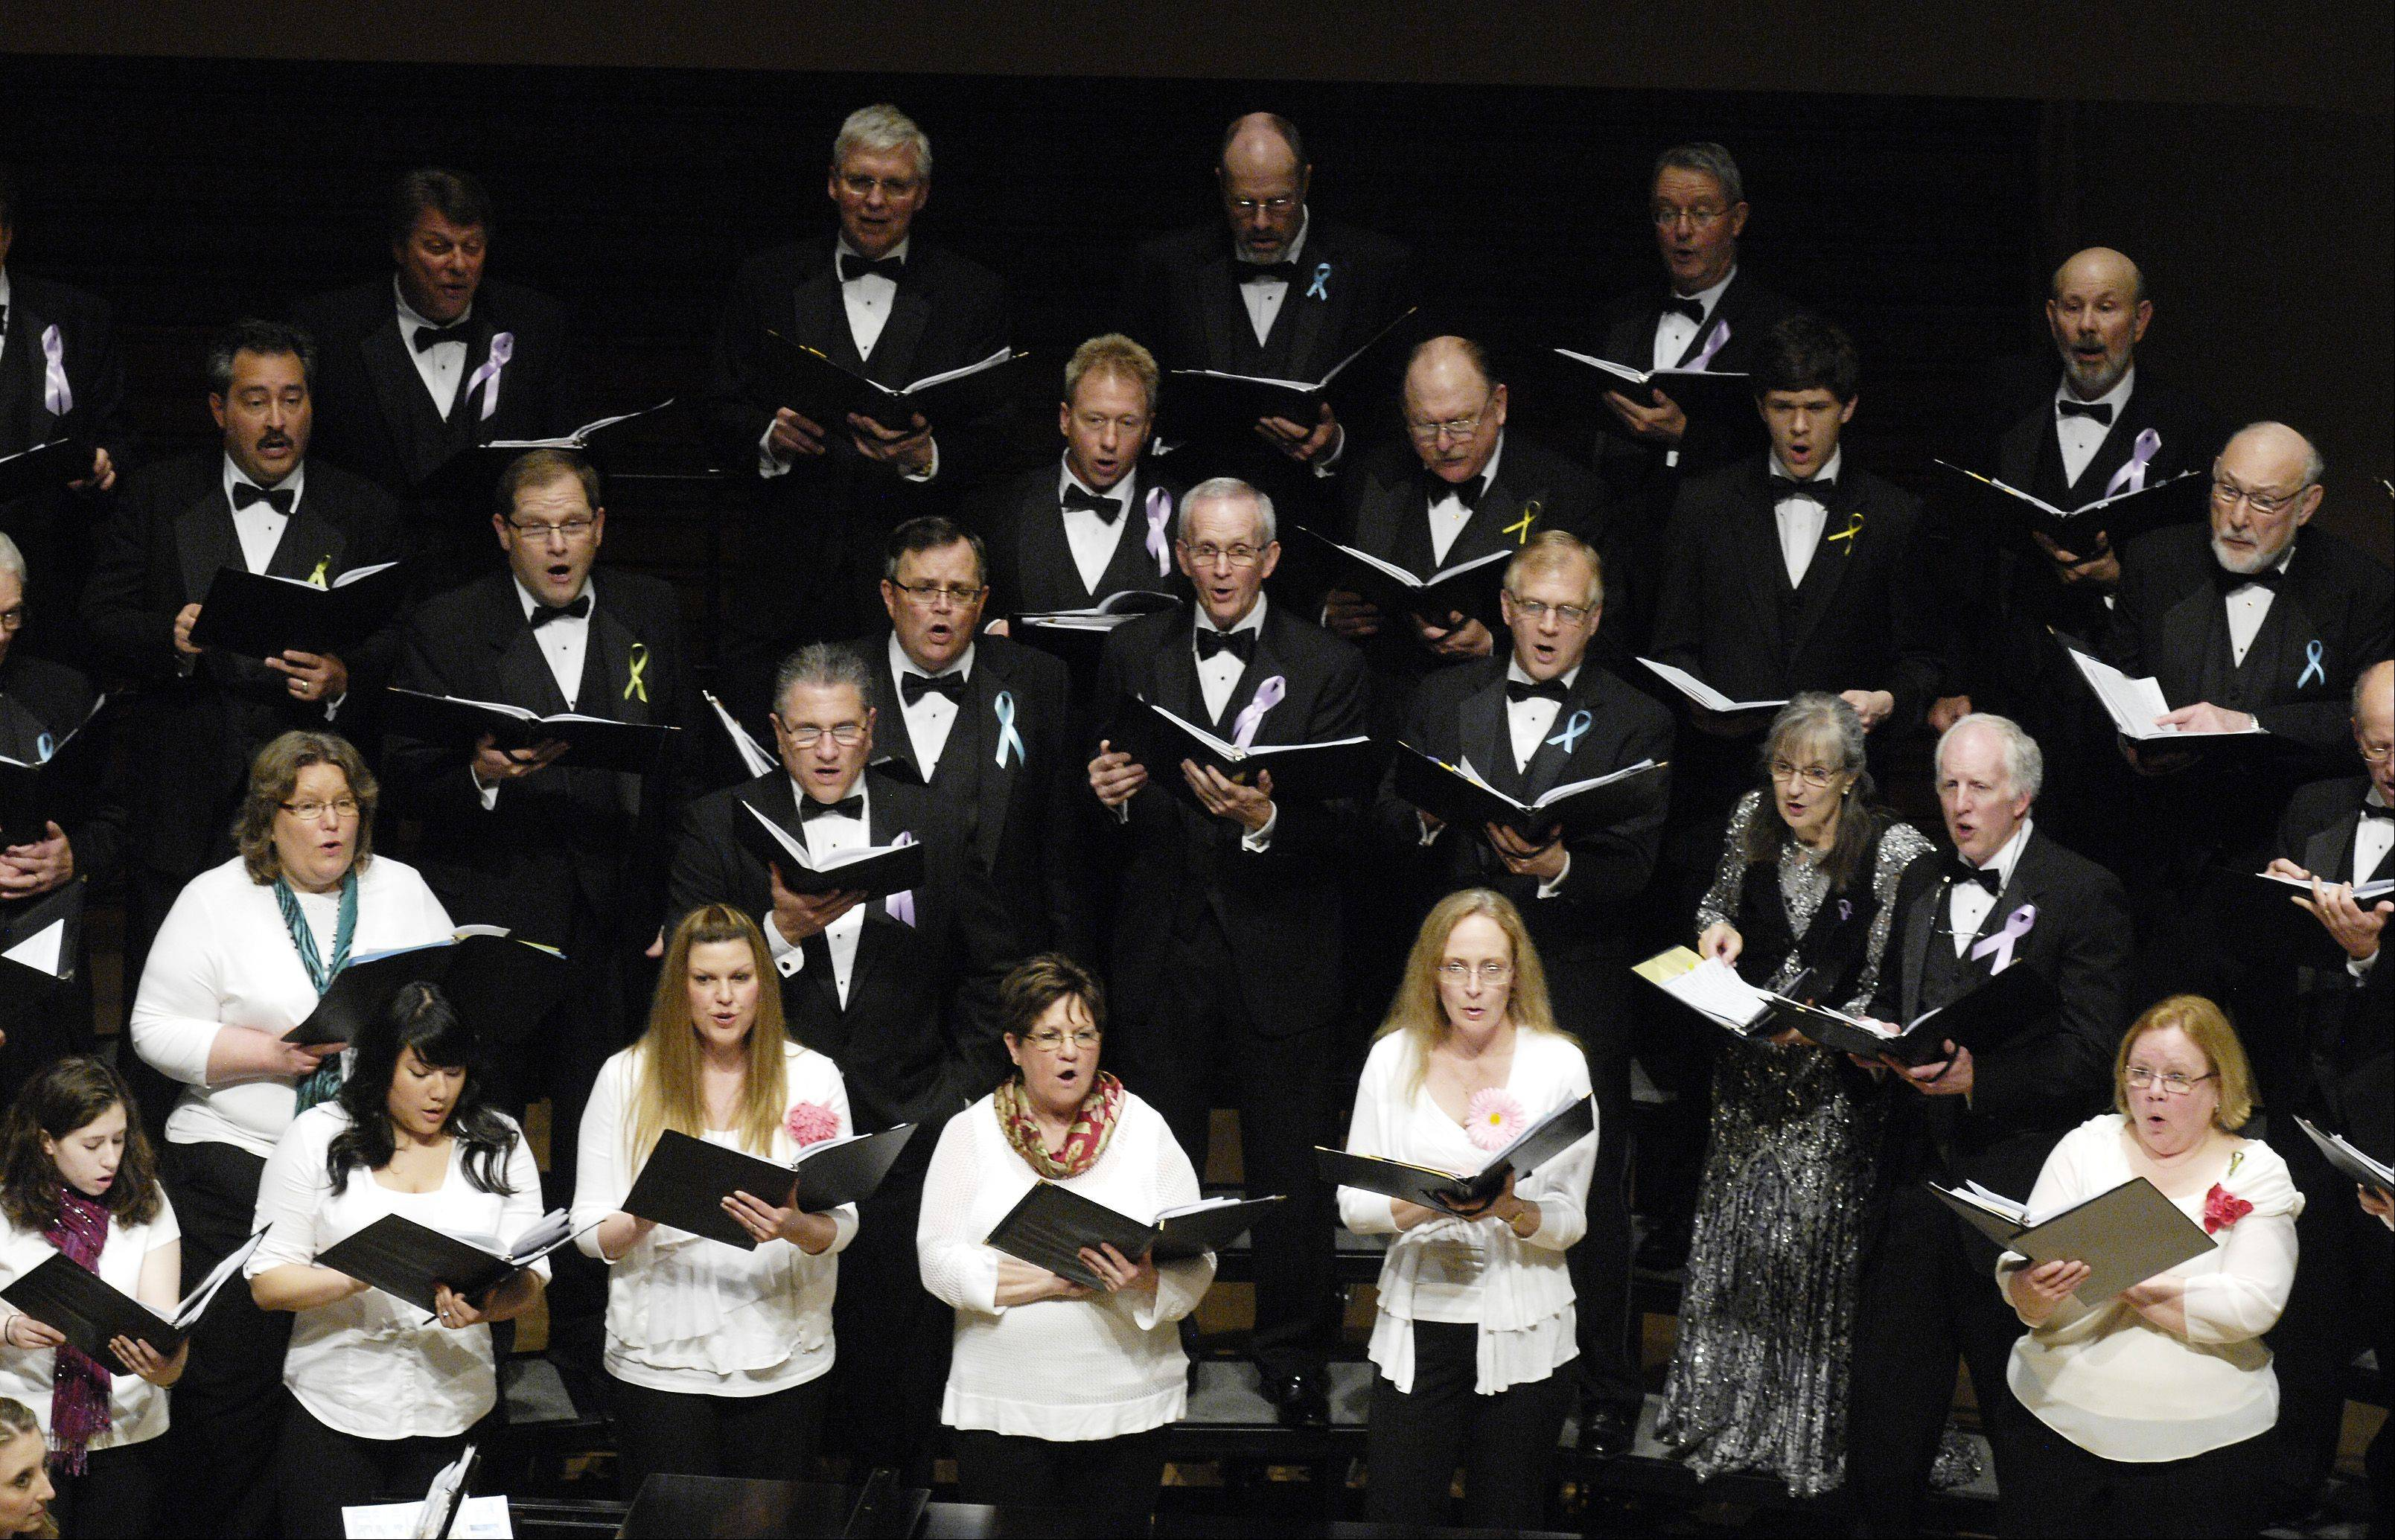 The Voices of Hope choir performs Sunday at North Central College in Naperville, during a special concert for people whose lives were touched by cancer.